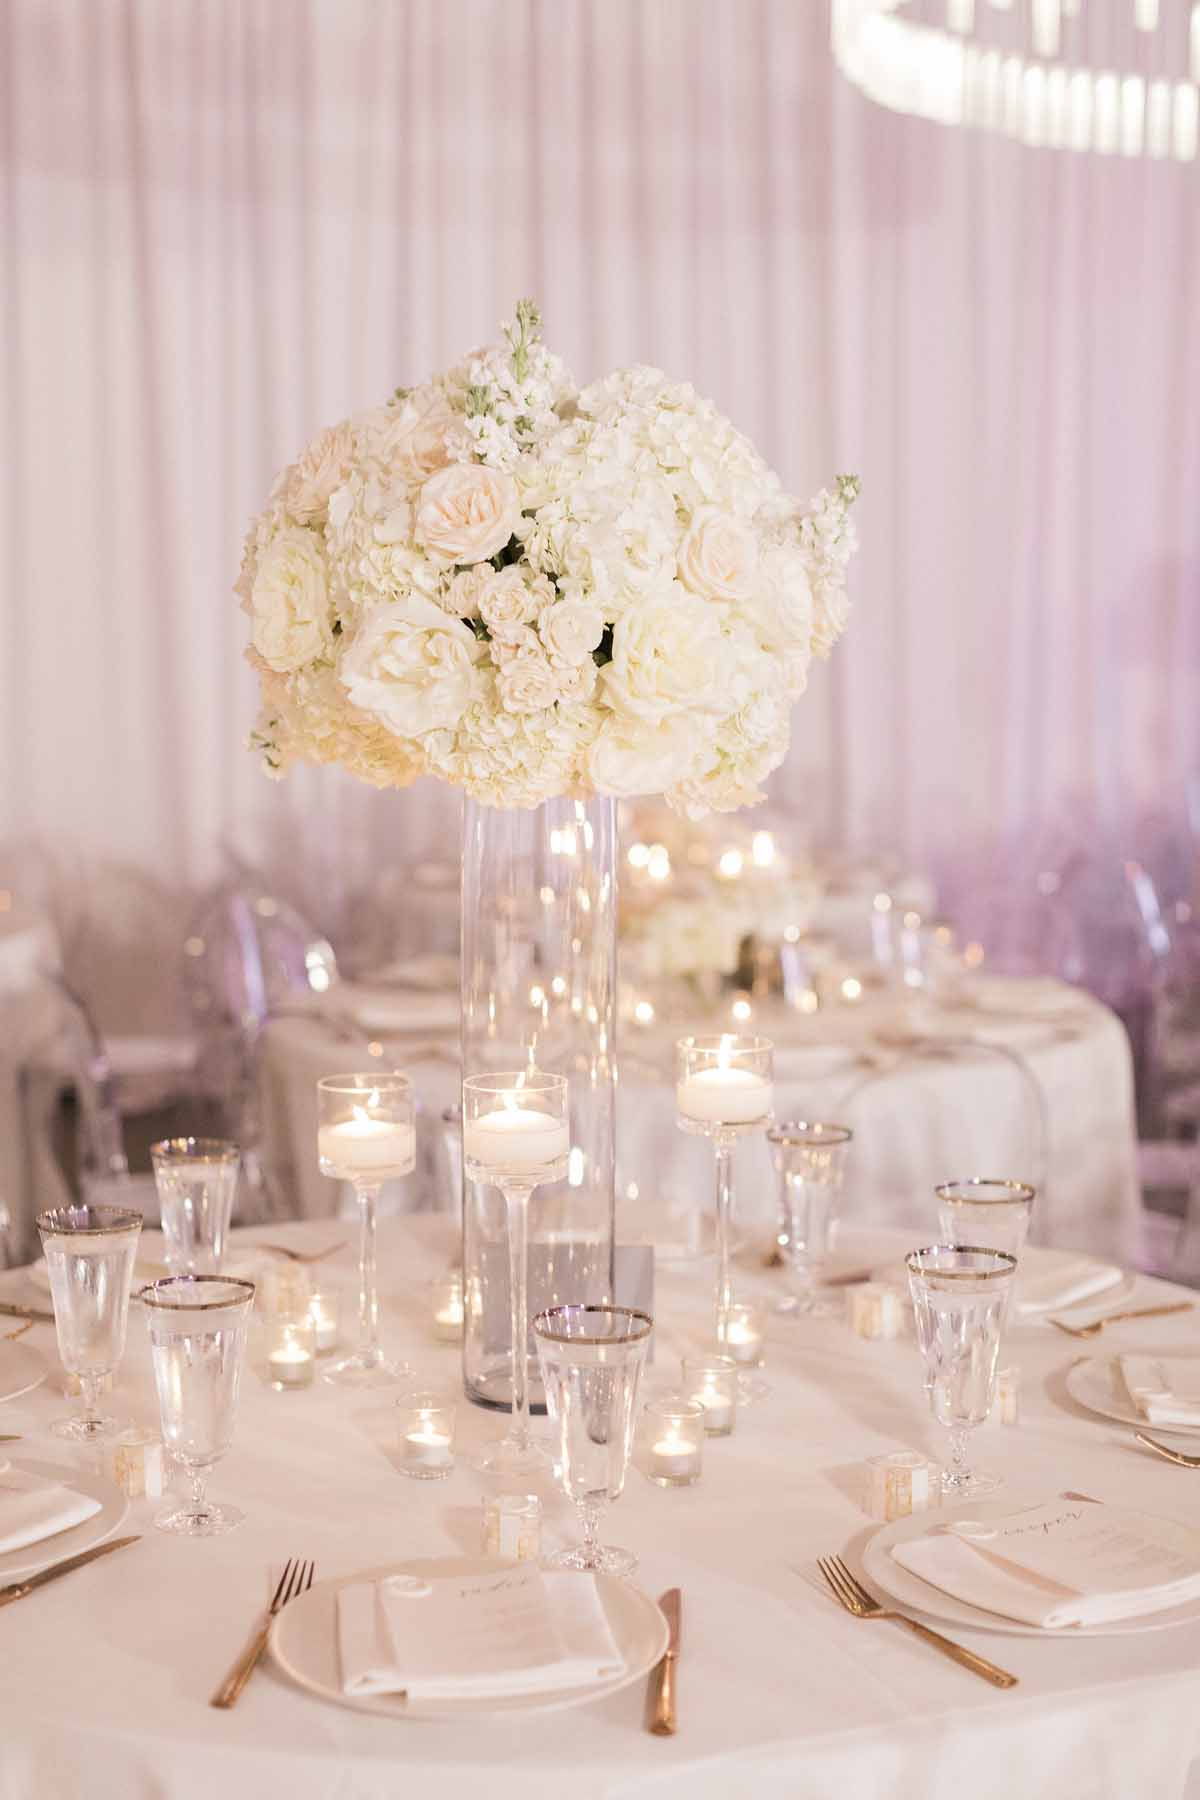 Tall, white centerpiece of white roses and white hydrangea